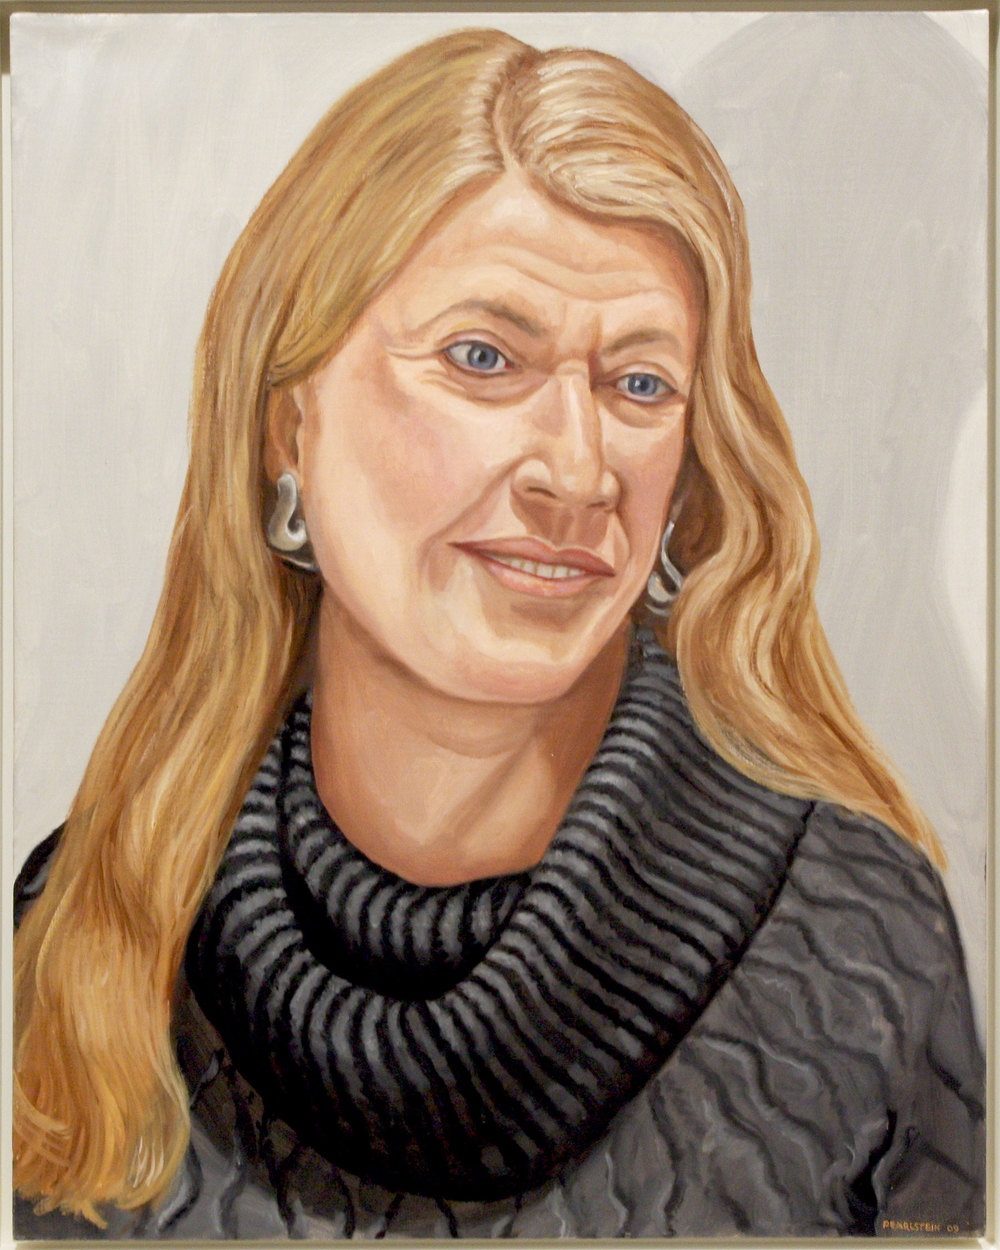 BARBARA HOFFMAN , 2009 Oil on canvas 28 x 22 inches